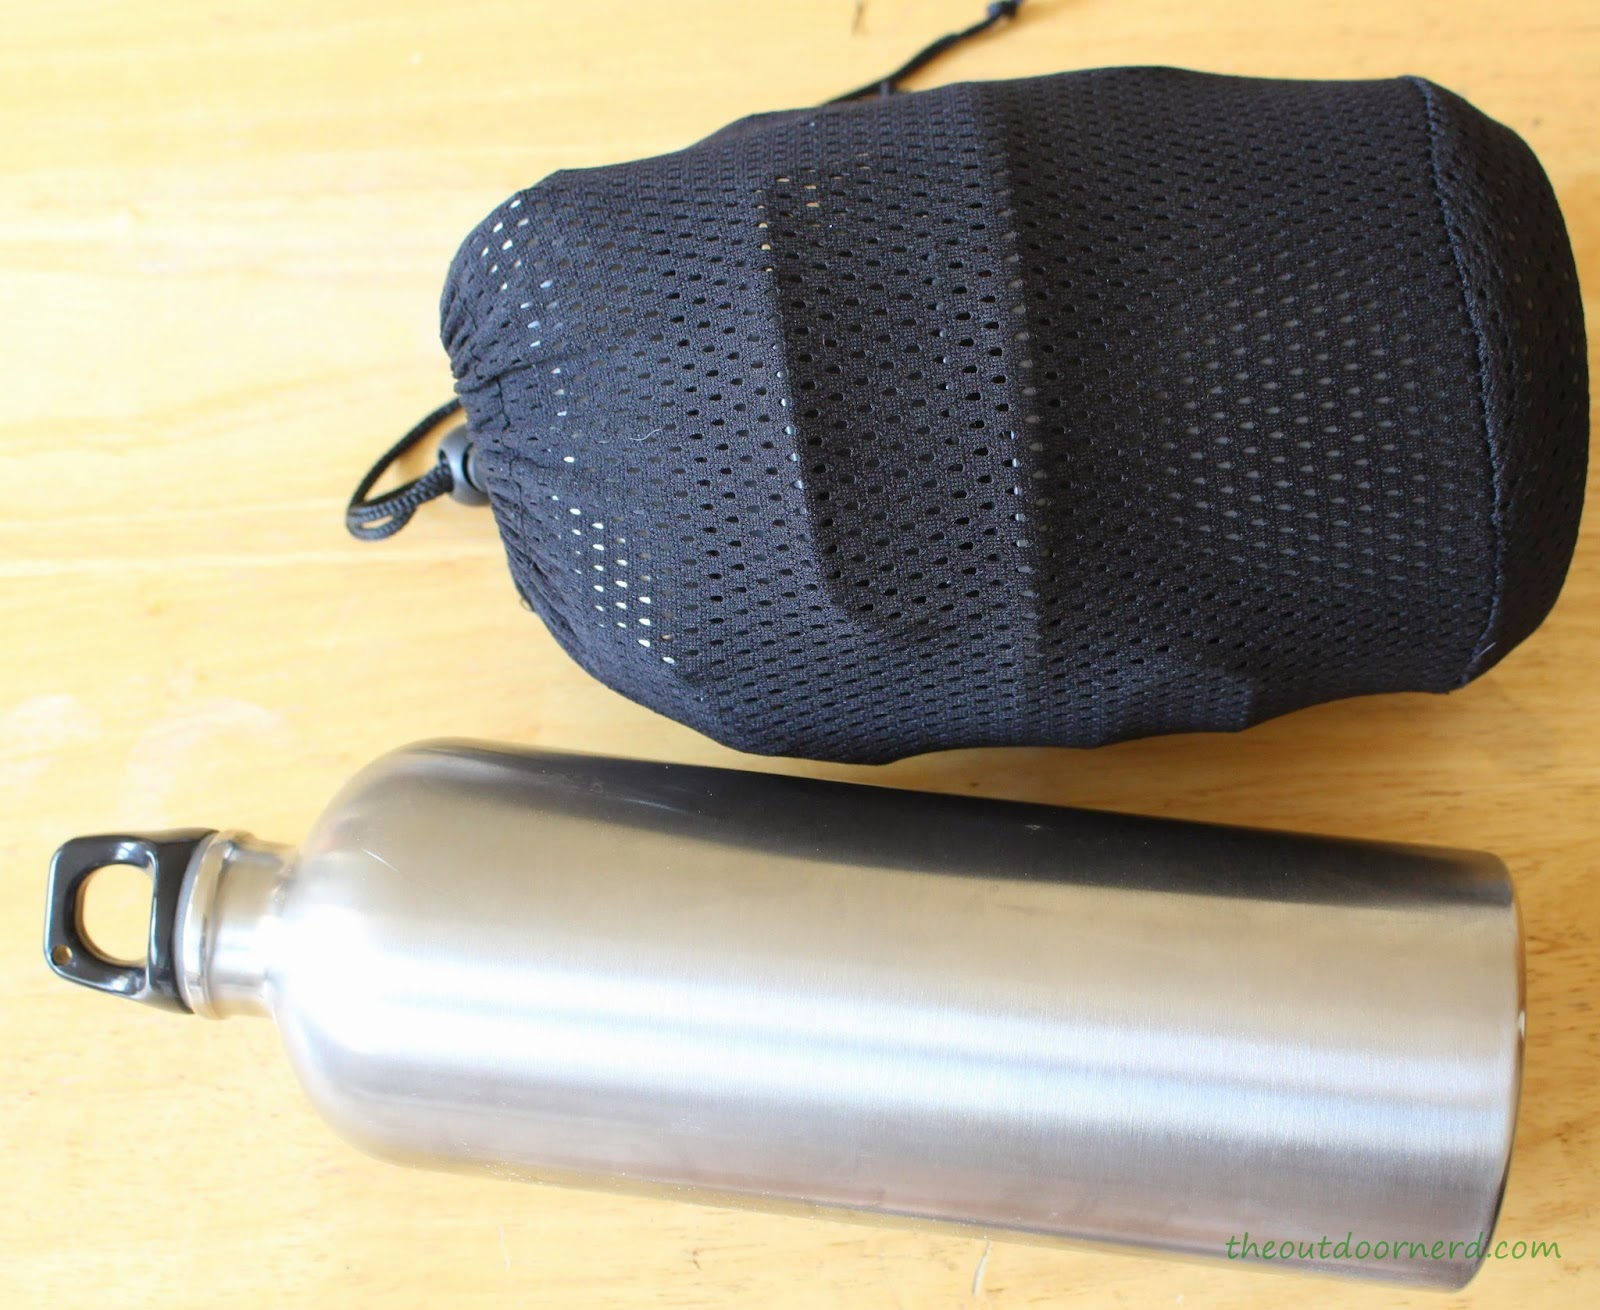 Cooking Kit with Stainless Steel Water Bottle